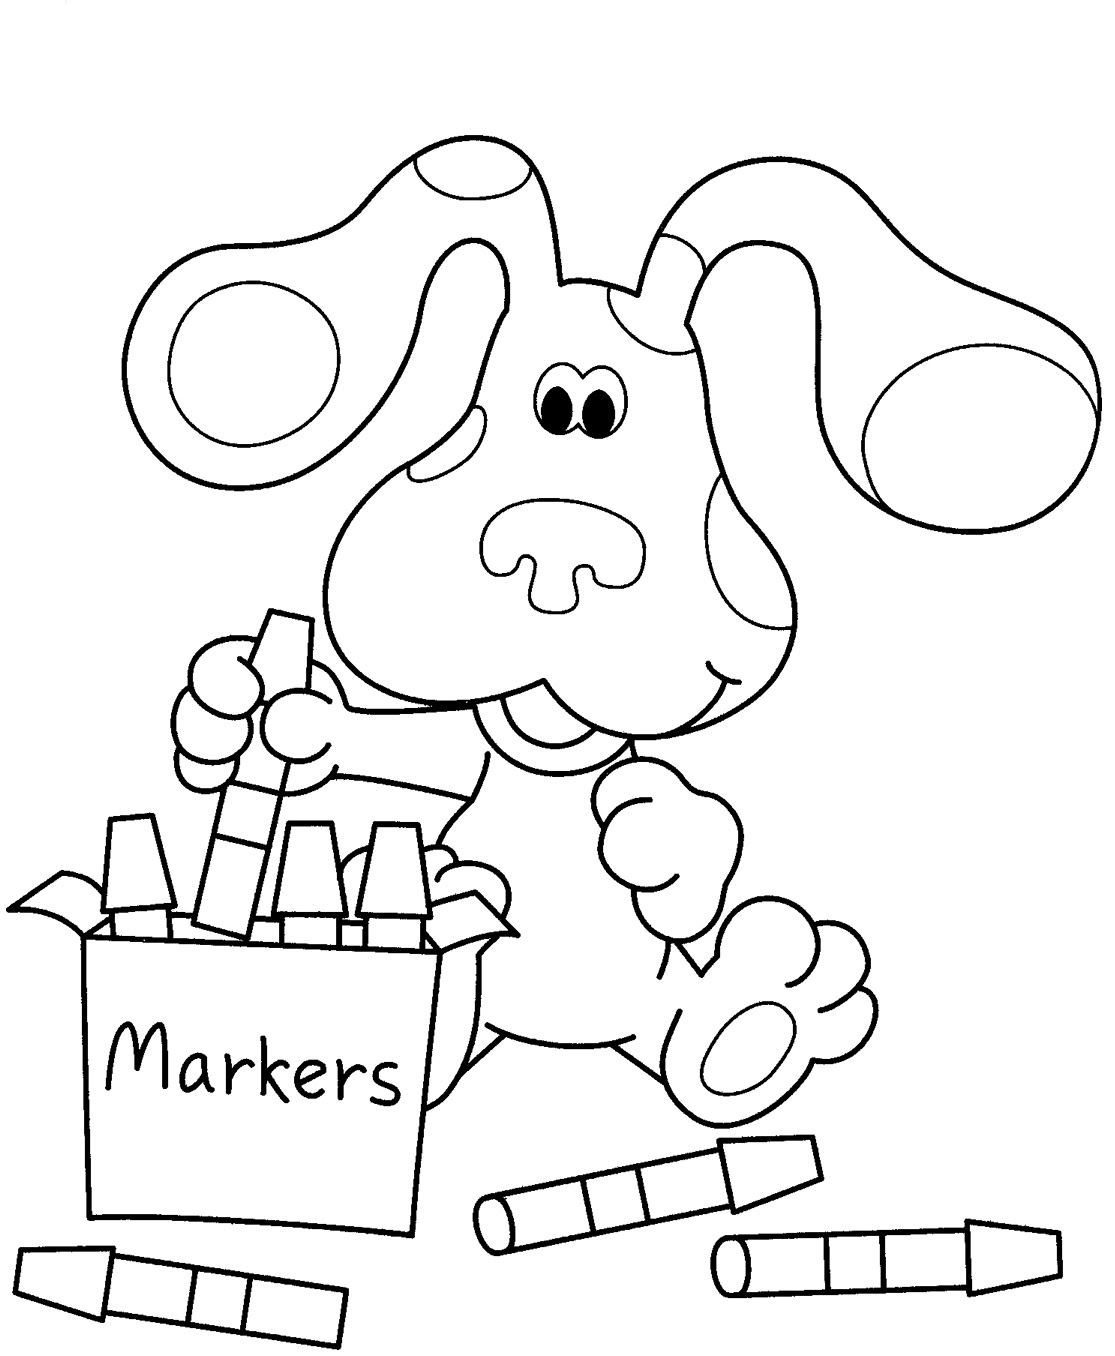 Nick Jr Coloring Pages (14) | Coloring Kids